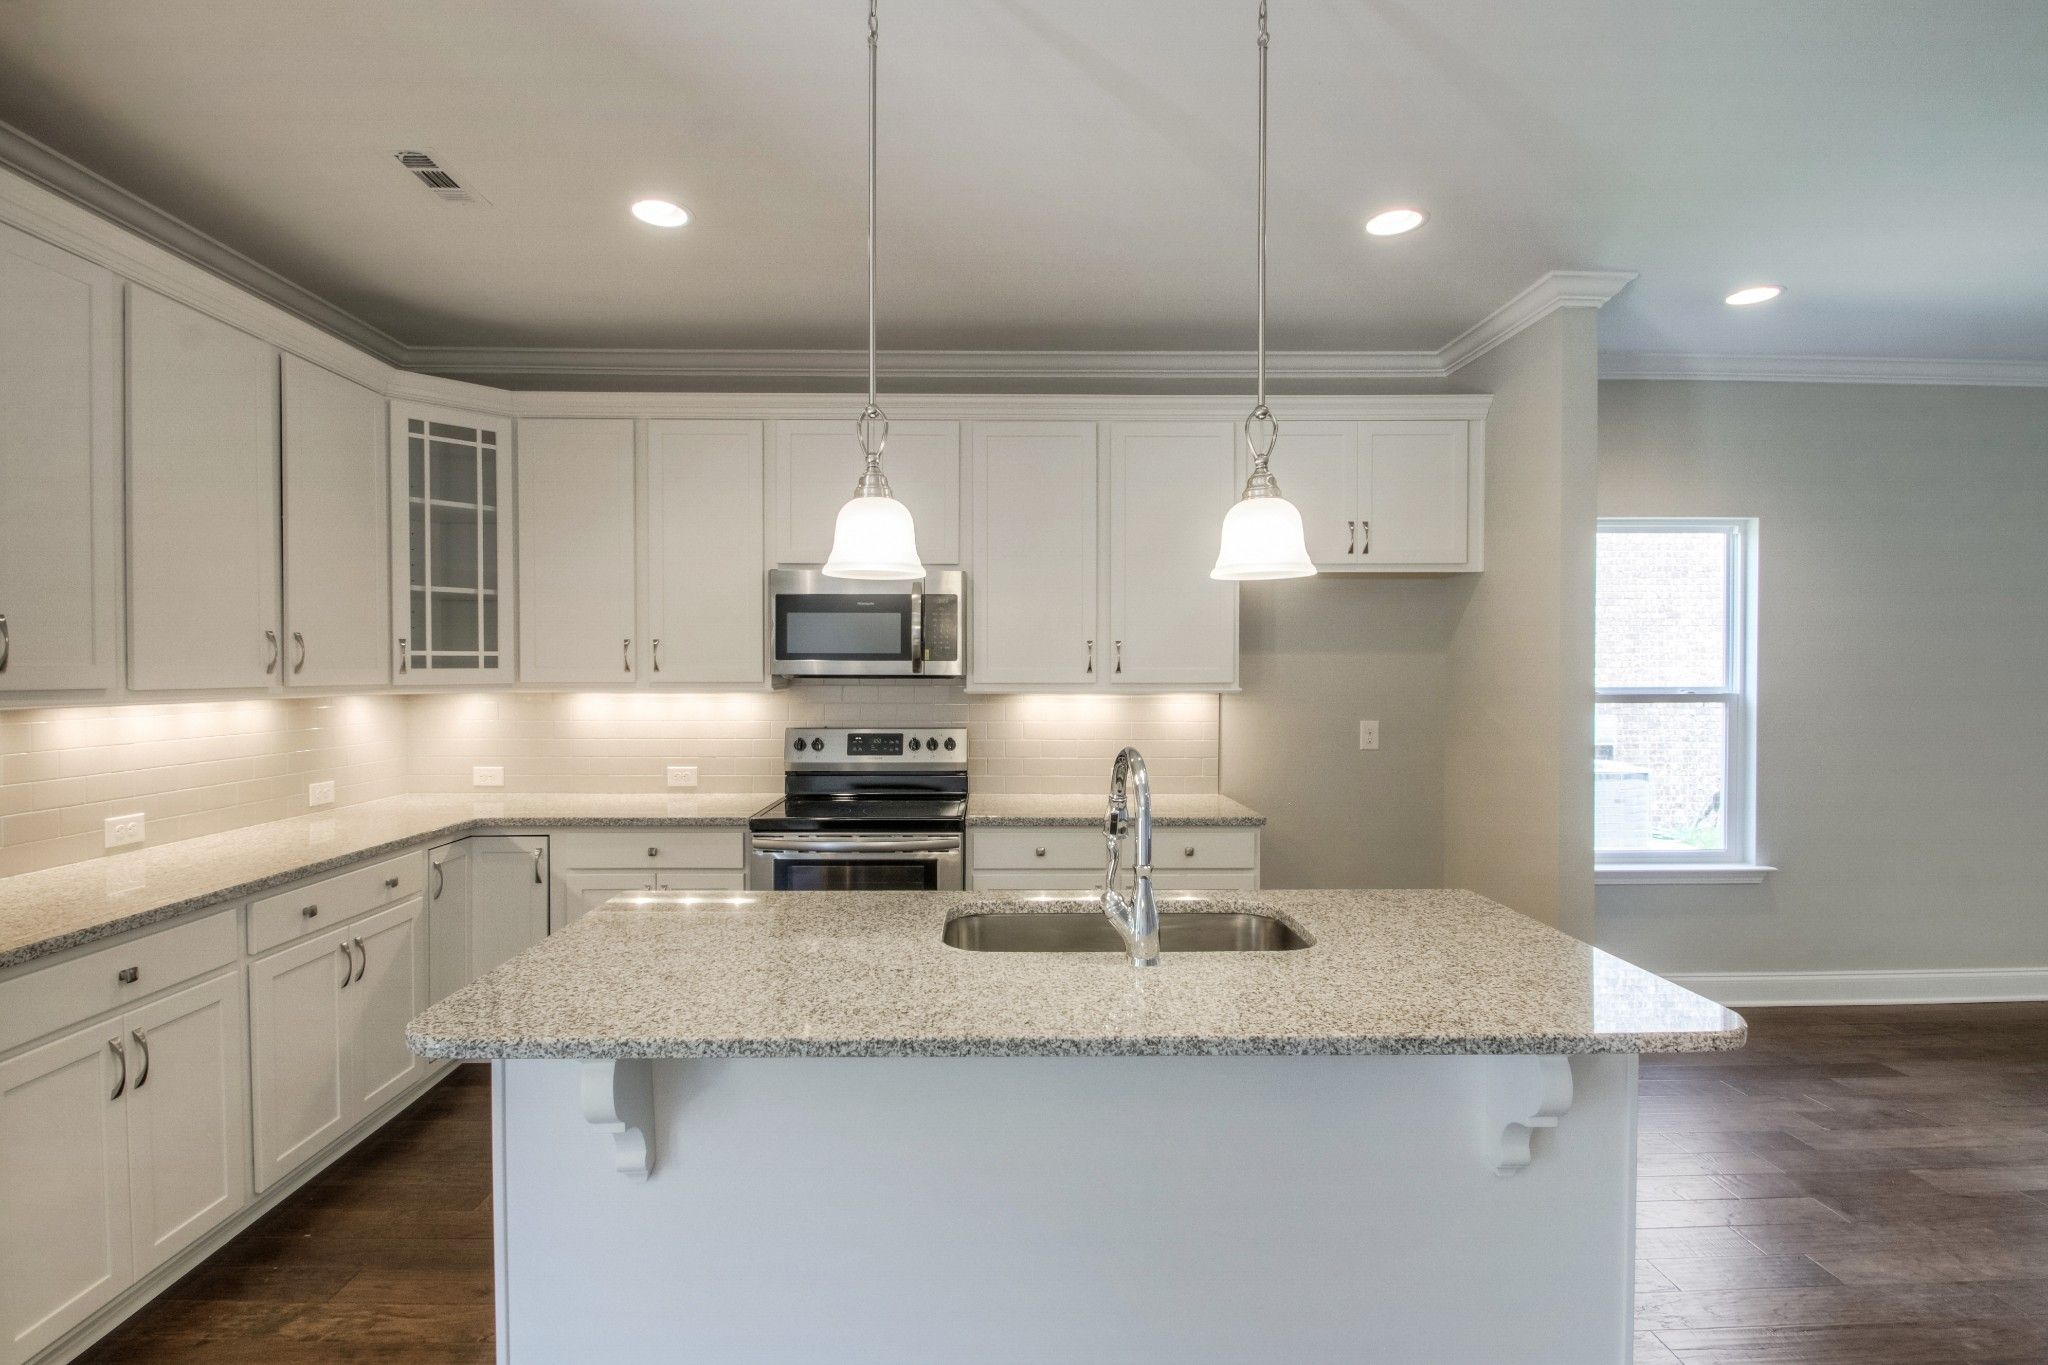 Kitchen featured in The Ridgemont By Goodall Homes in Huntsville, AL